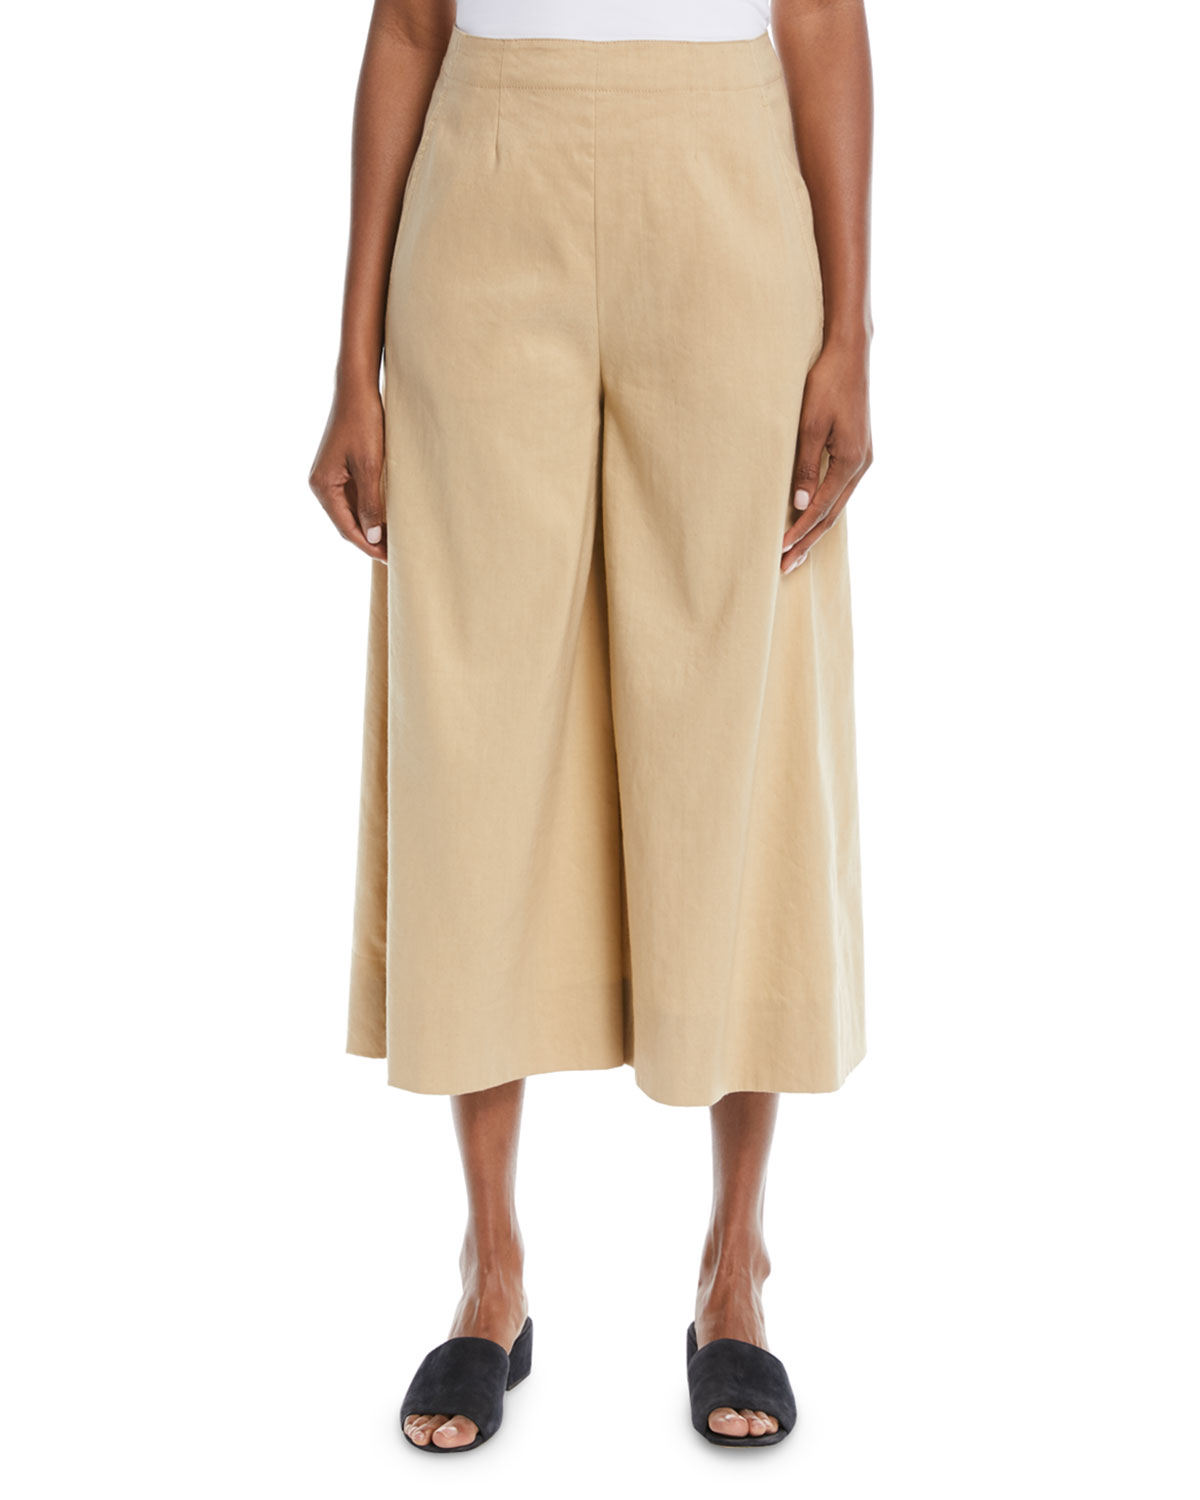 High-Waist Stretch-Linen Ankle Culotte Pants